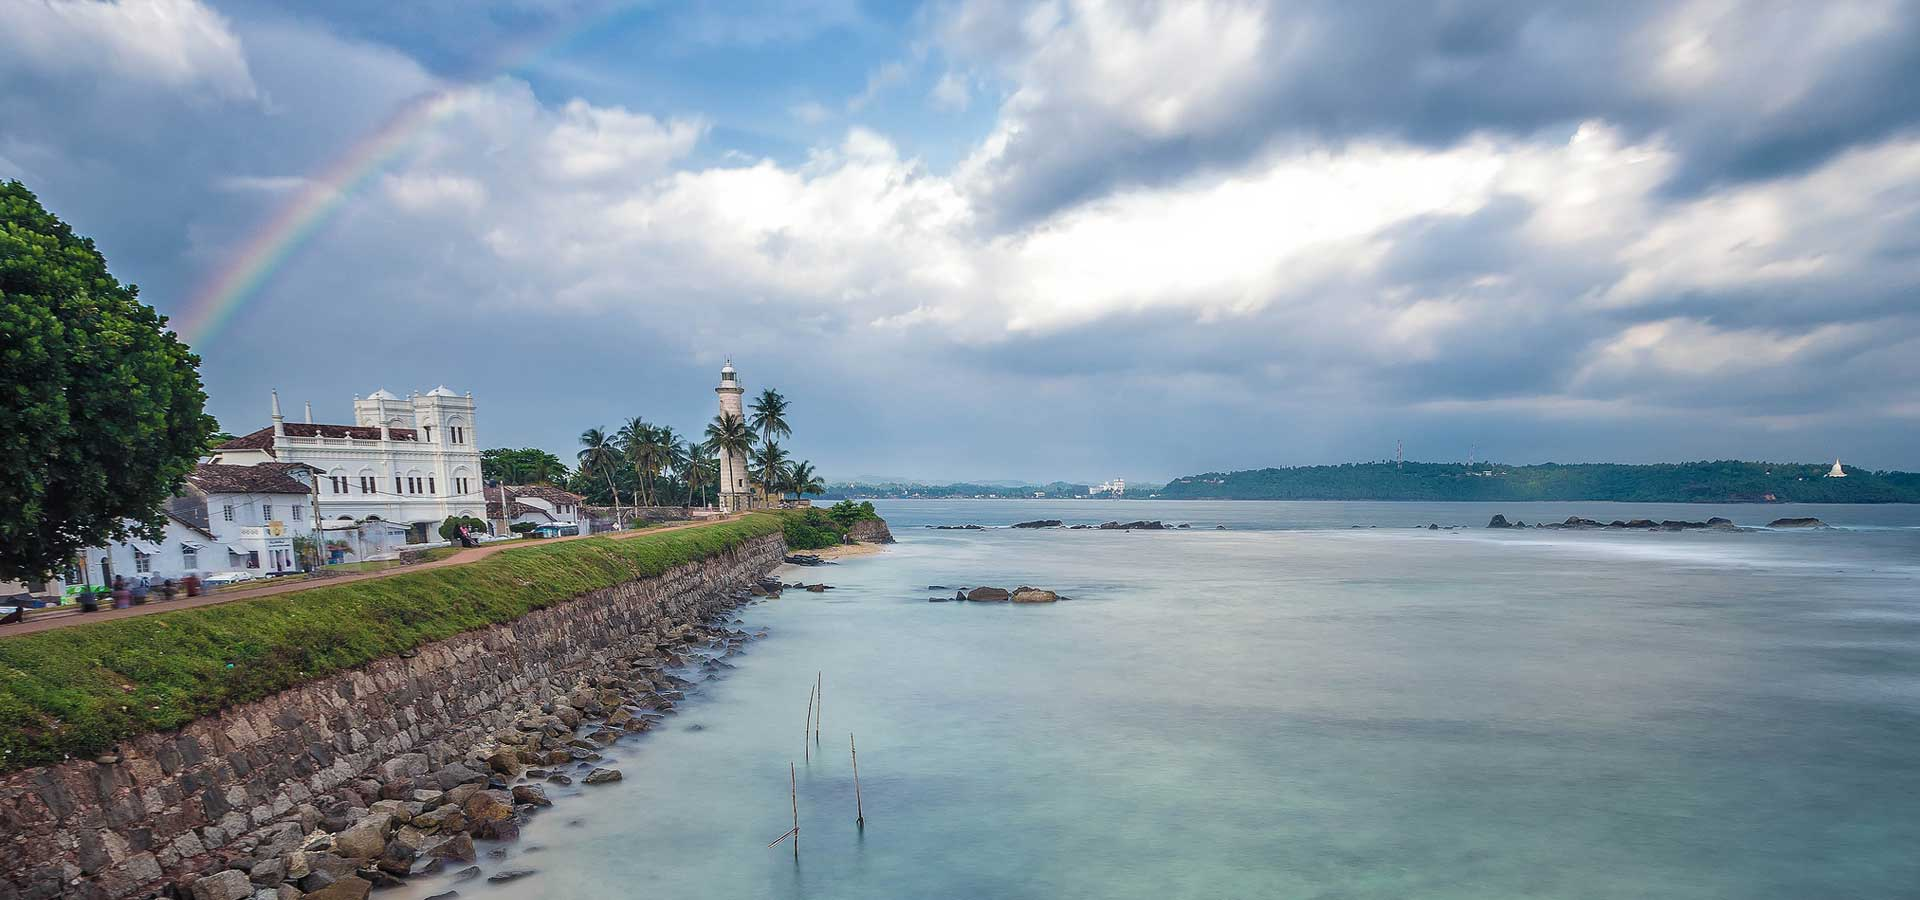 Attractions in Galle - Top Things to do in Galle - Galle experiences - Best things to do in Galle - Places to Visit in Galle - Leisure places in Galle